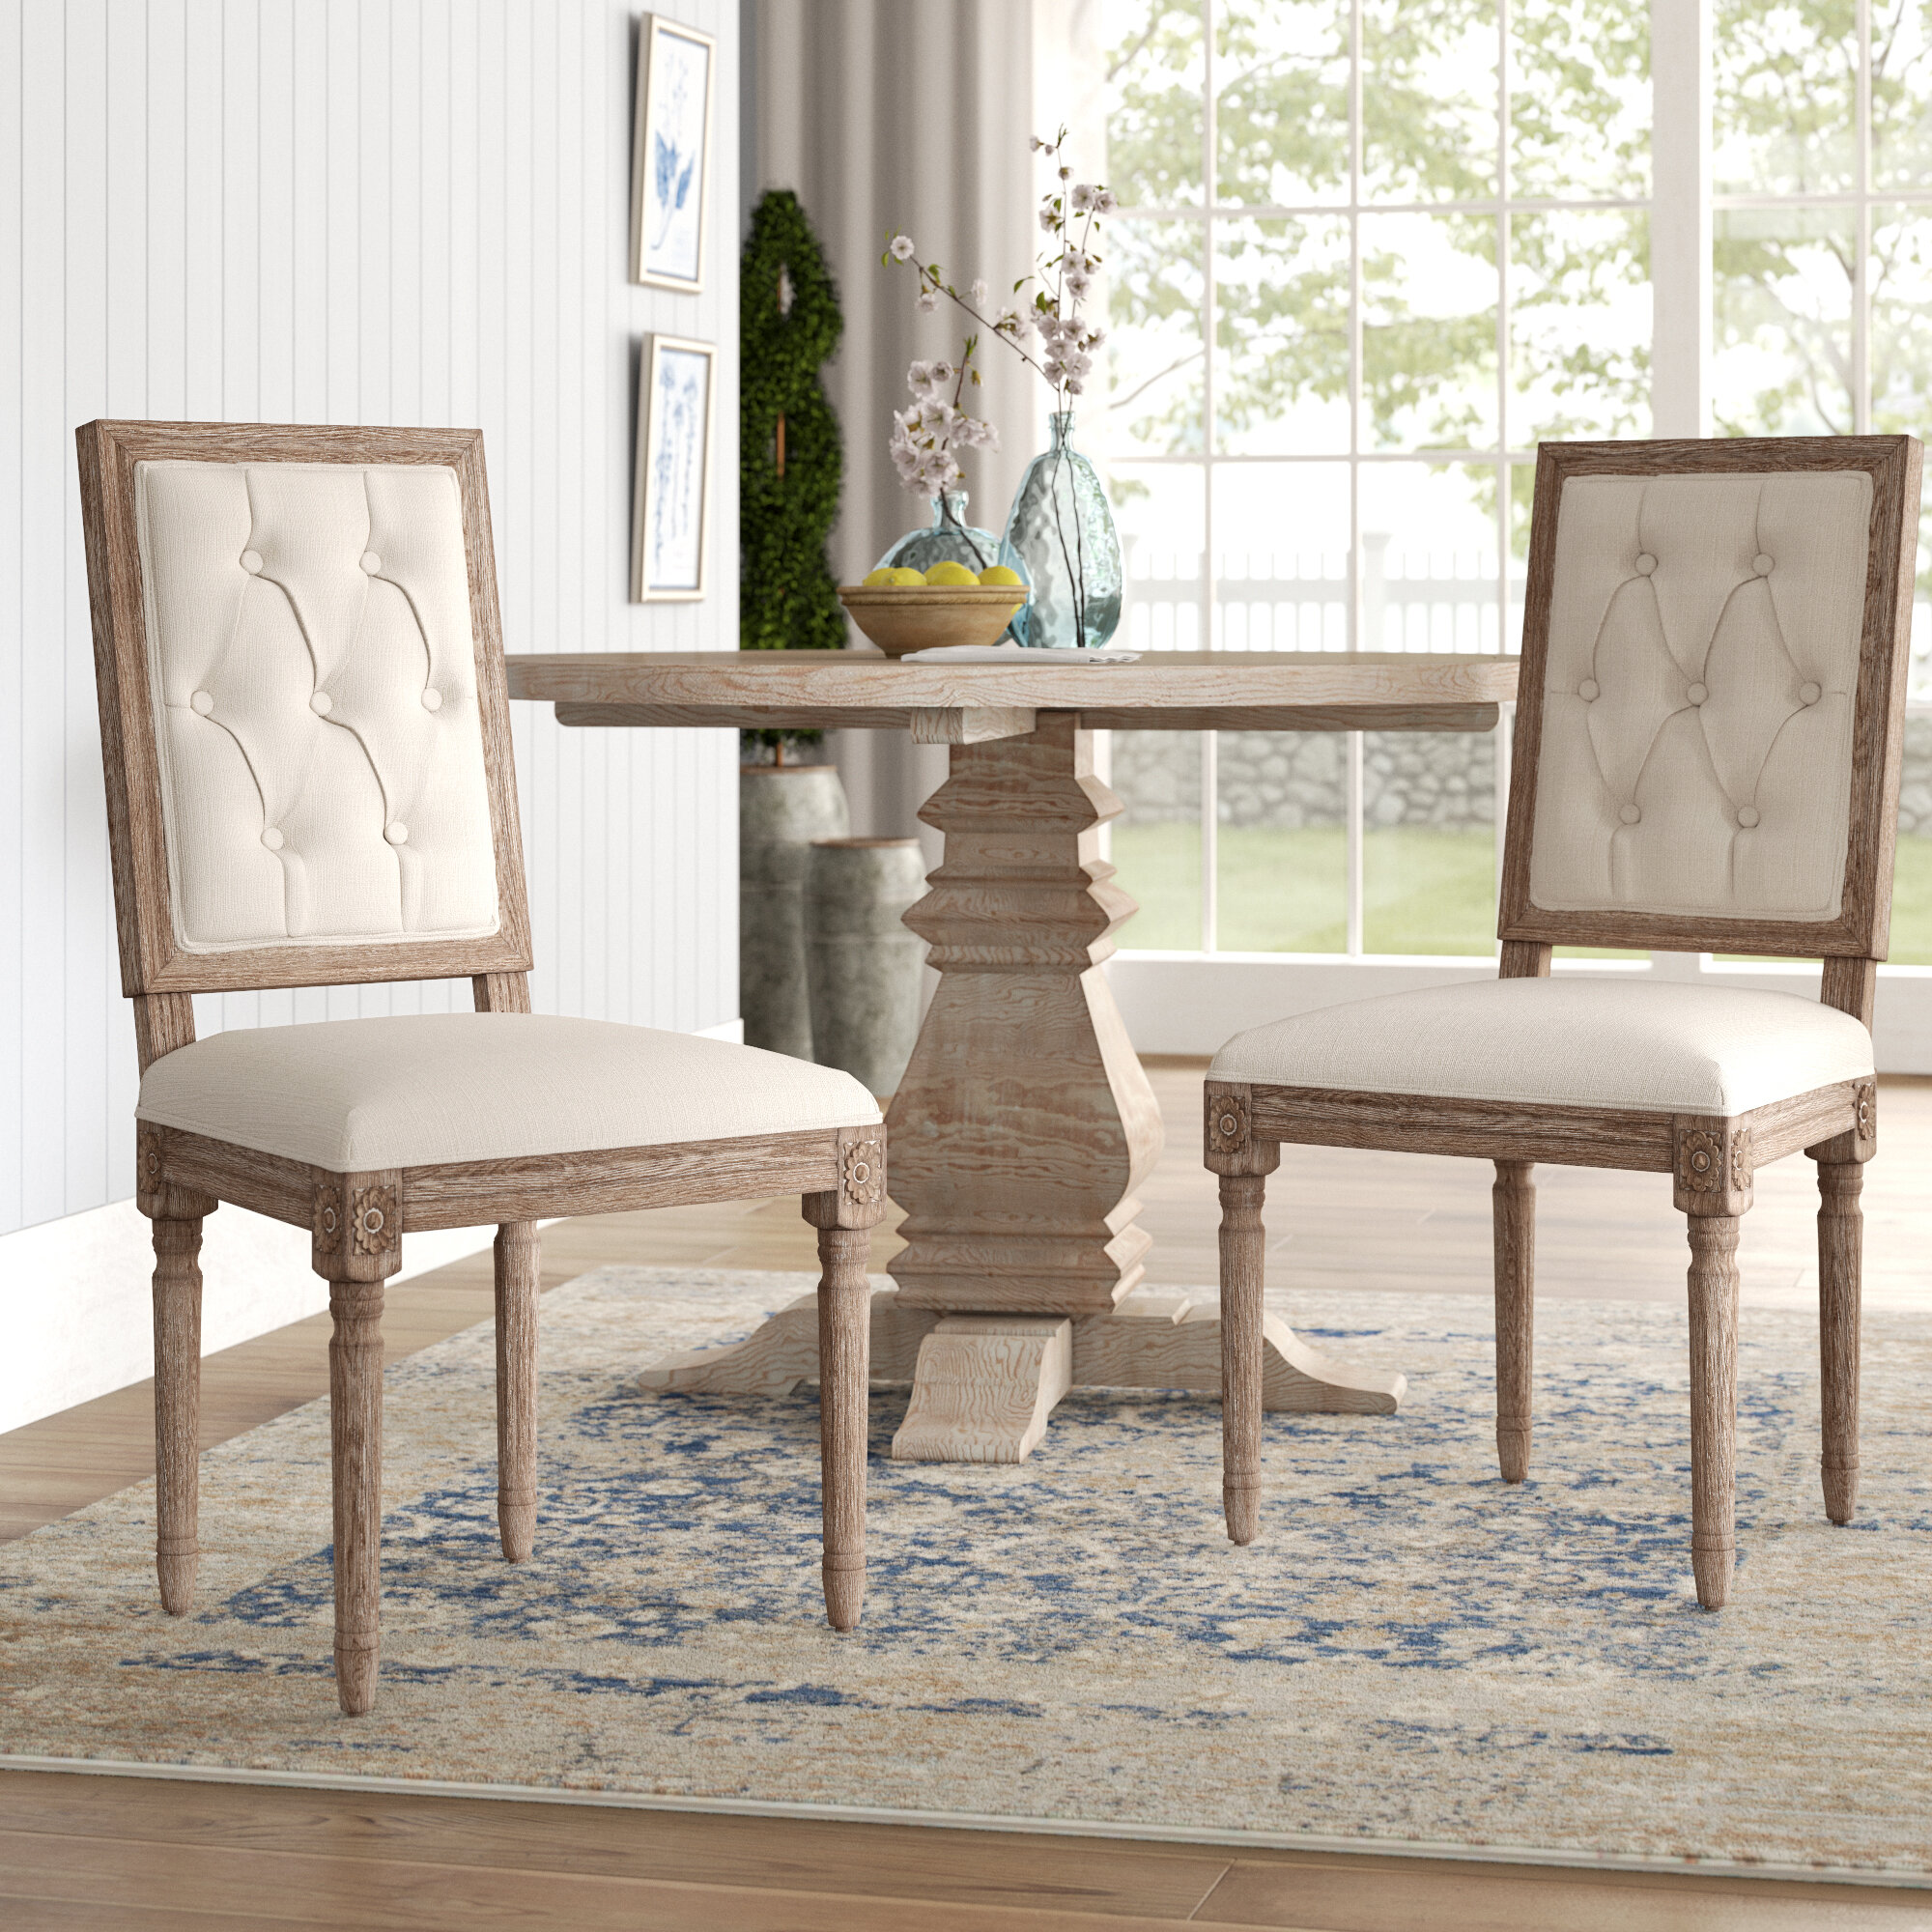 Patillo Tufted Square Back Upholstered Dining Chair